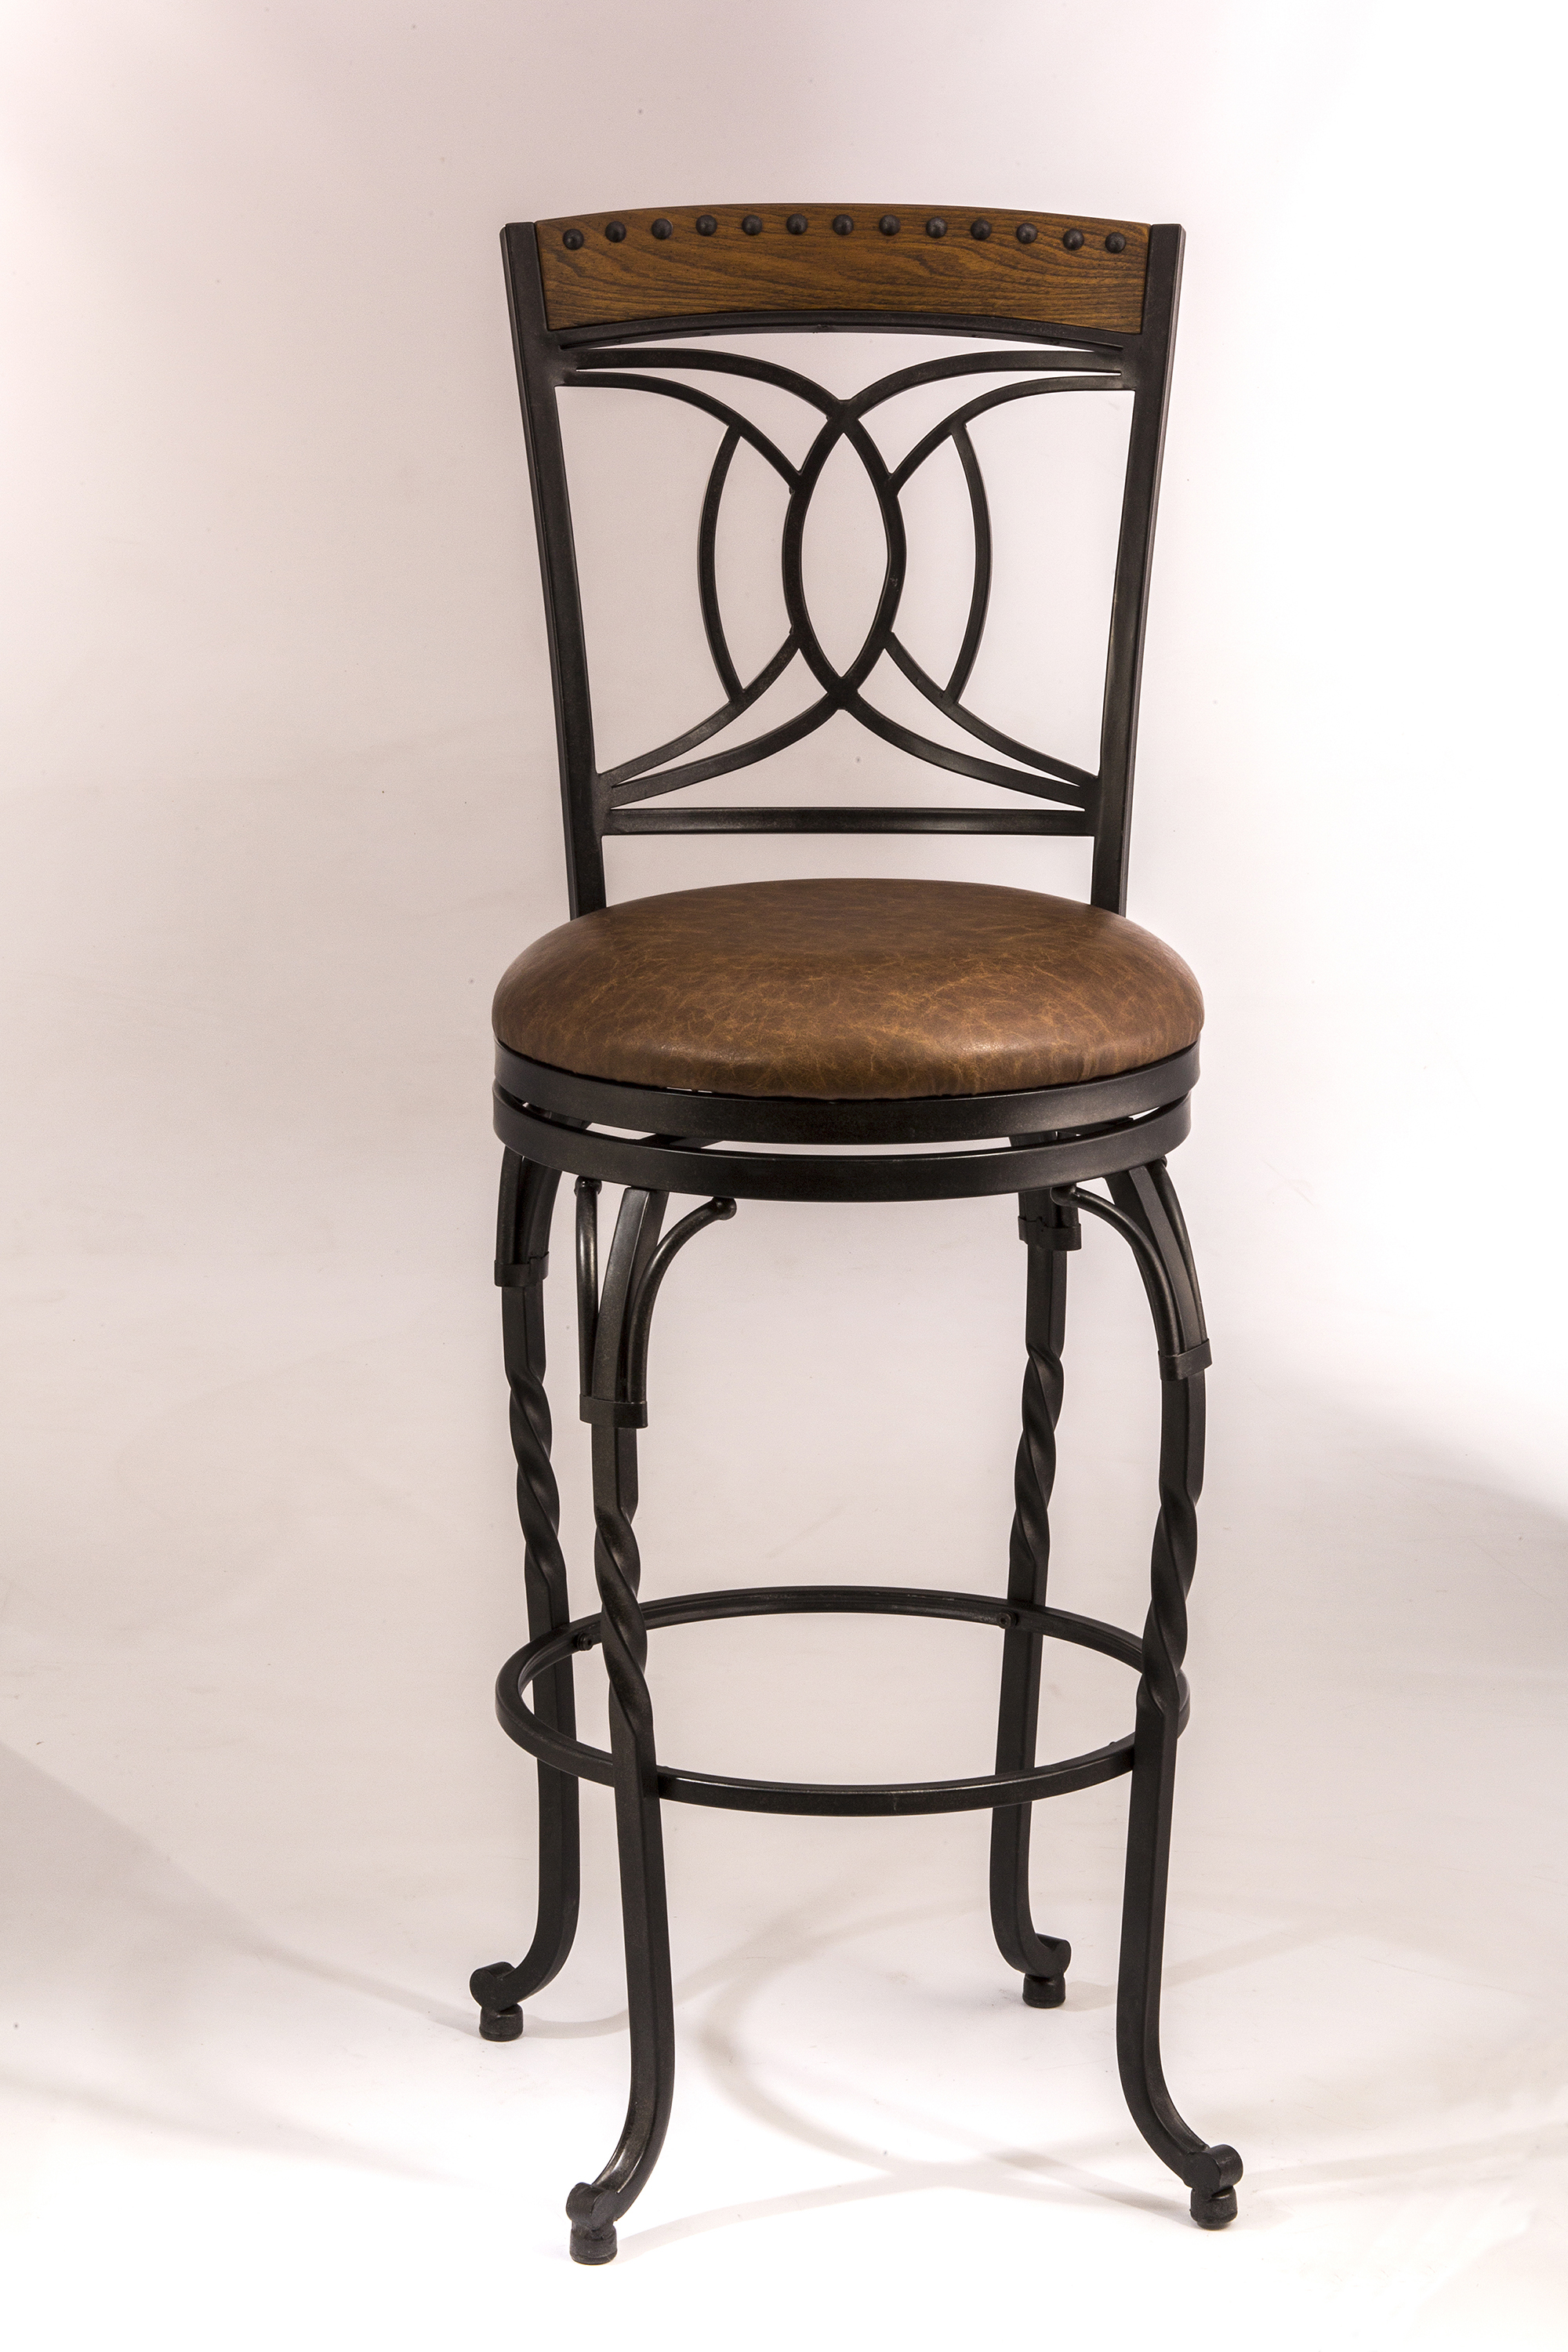 Hillsdale Metal Stools Swivel Counter Stool - Item Number: 5701-826